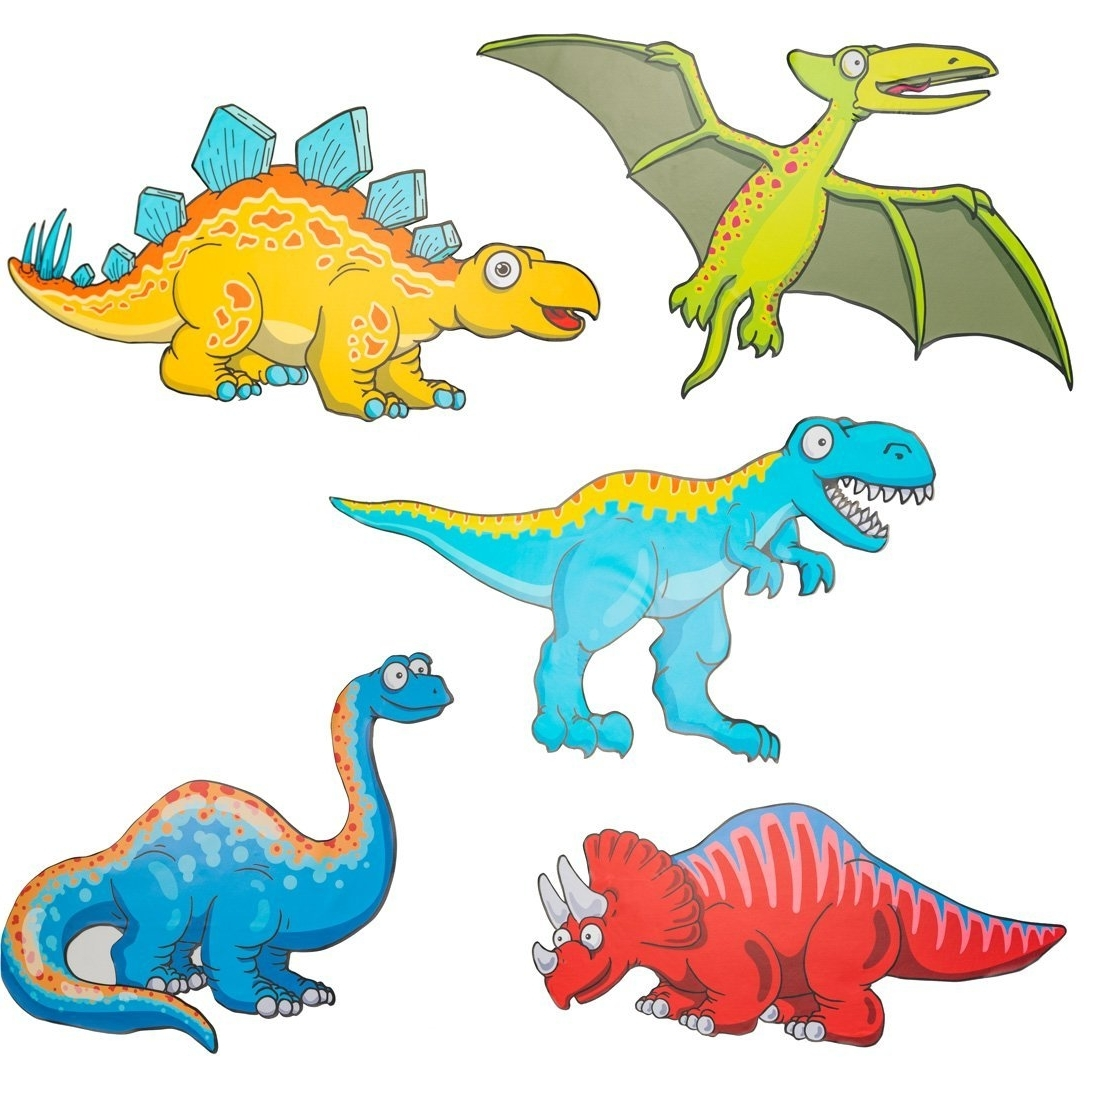 Widely Used Dinosaur Wall Art Regarding Cheap Dinosaur Wall Decals, Find Dinosaur Wall Decals Deals On Line (View 15 of 15)